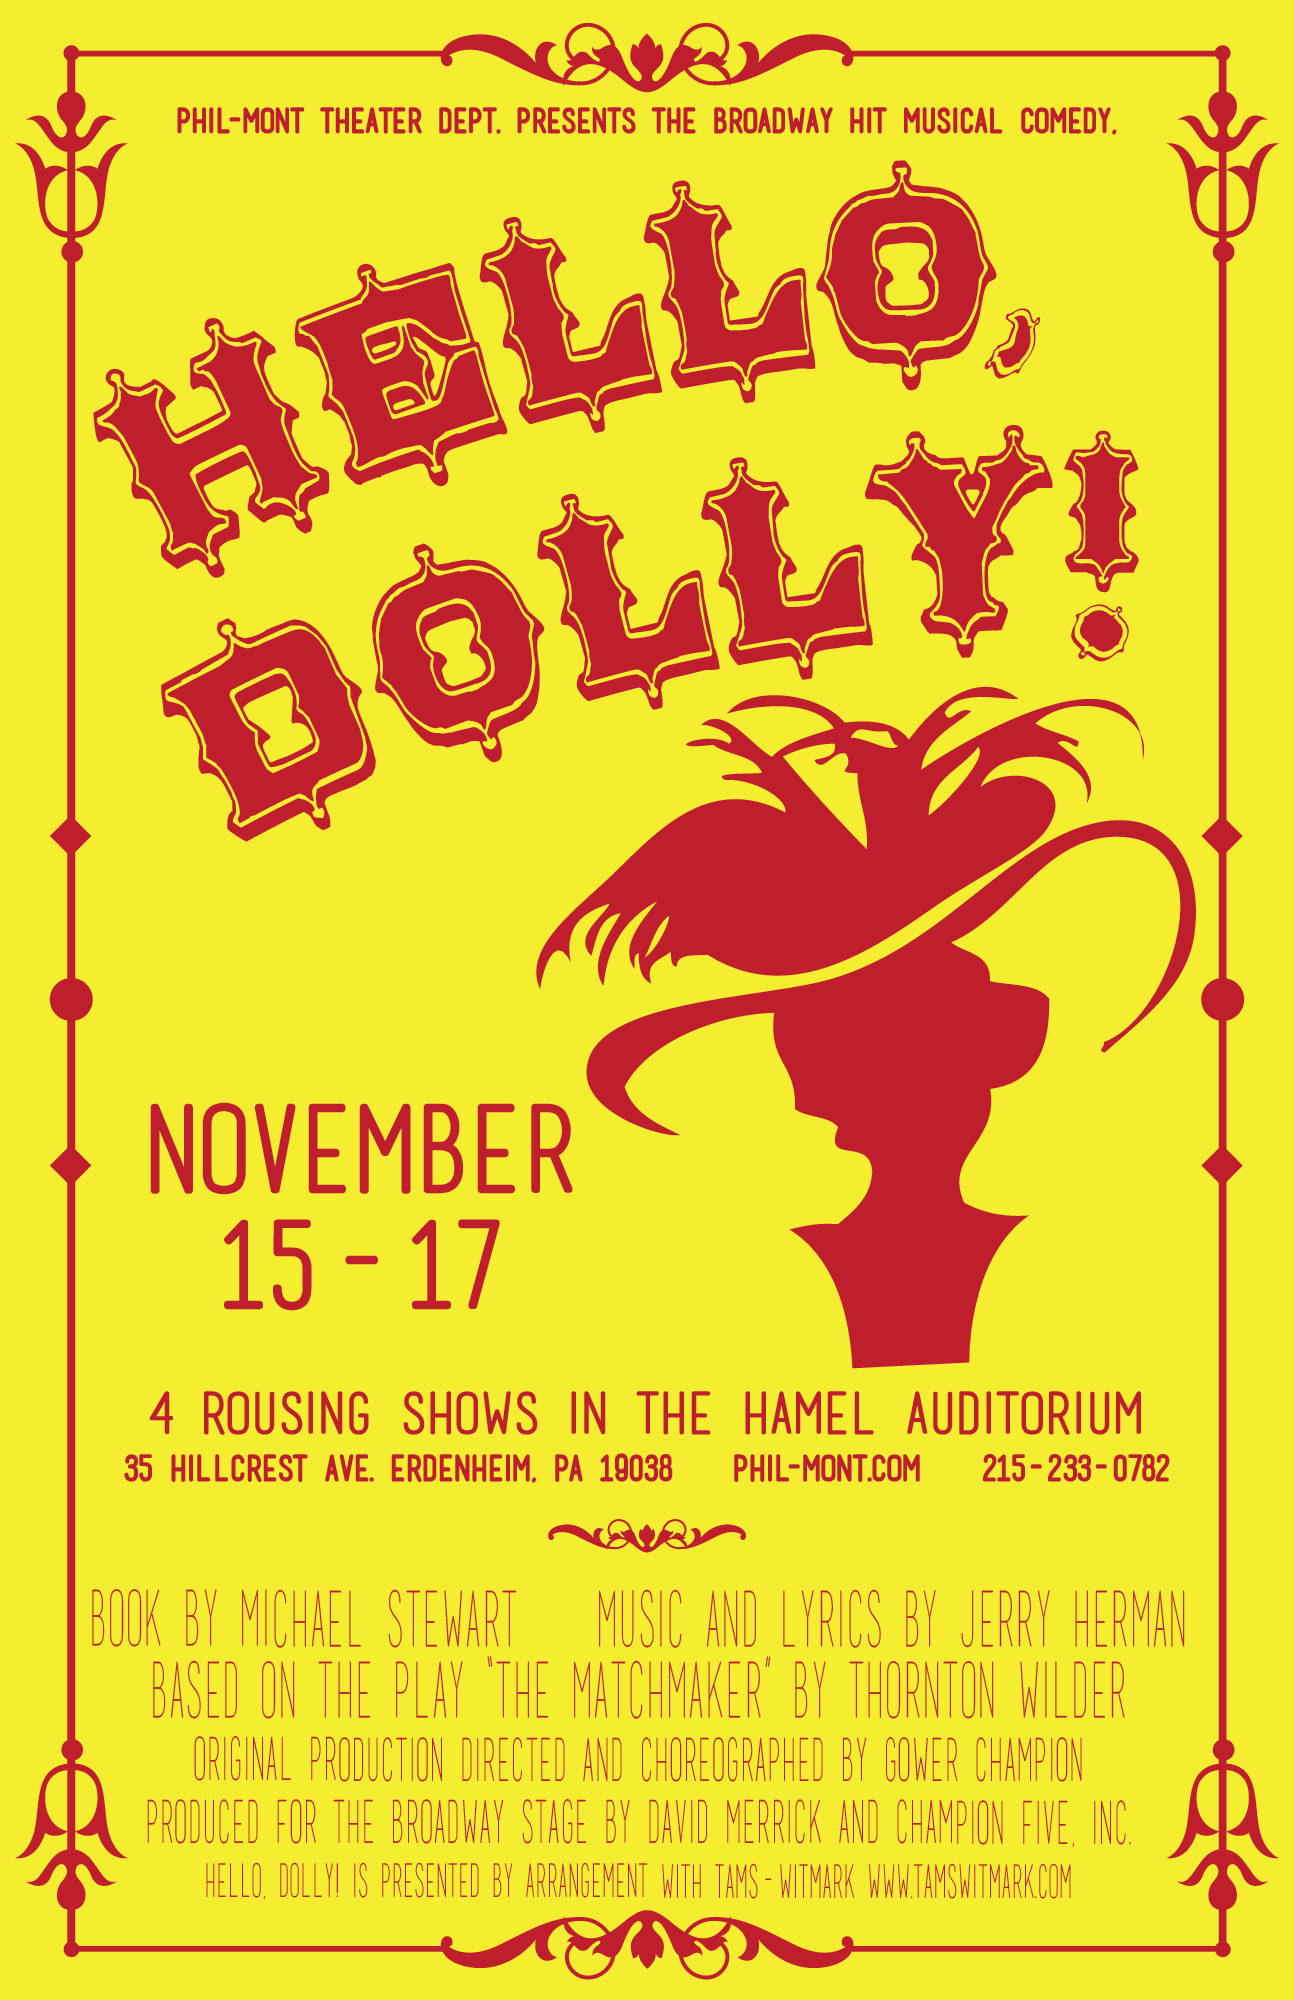 hello dolly large poster phil mont